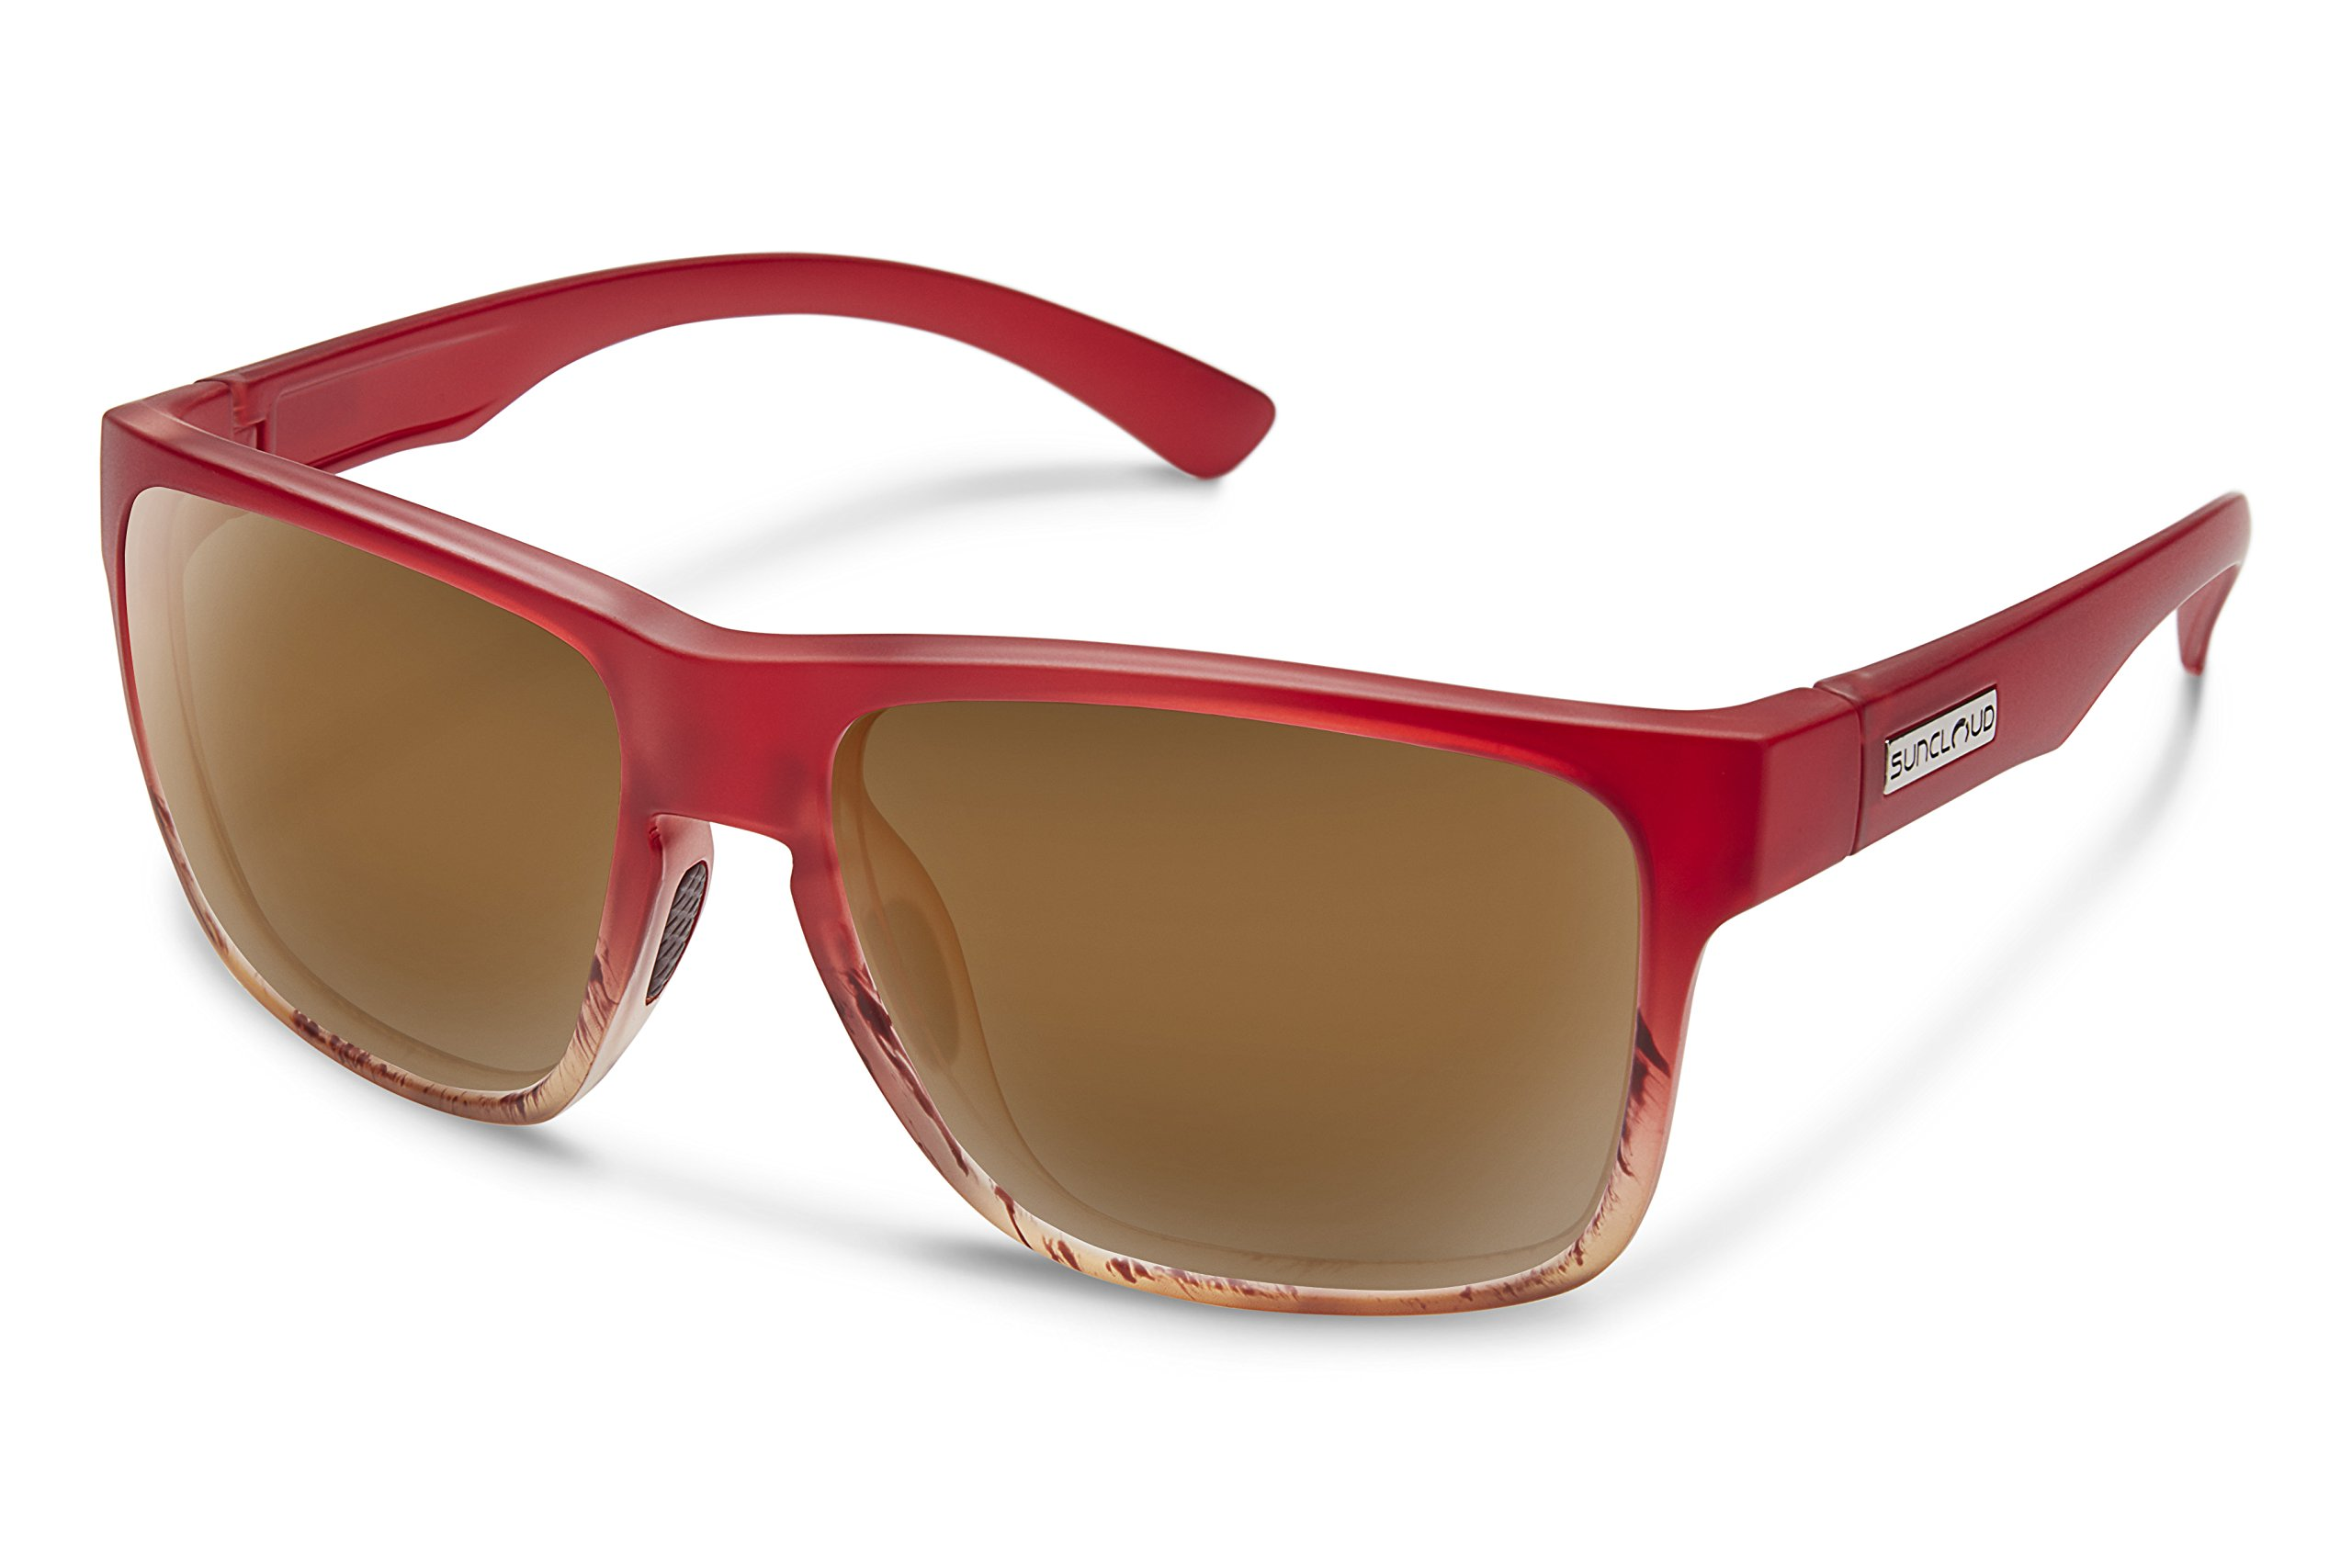 Suncloud Rambler Sunglasses, Red Tortoise Fade Frame/Brown Polycarbonate Lens, One Size